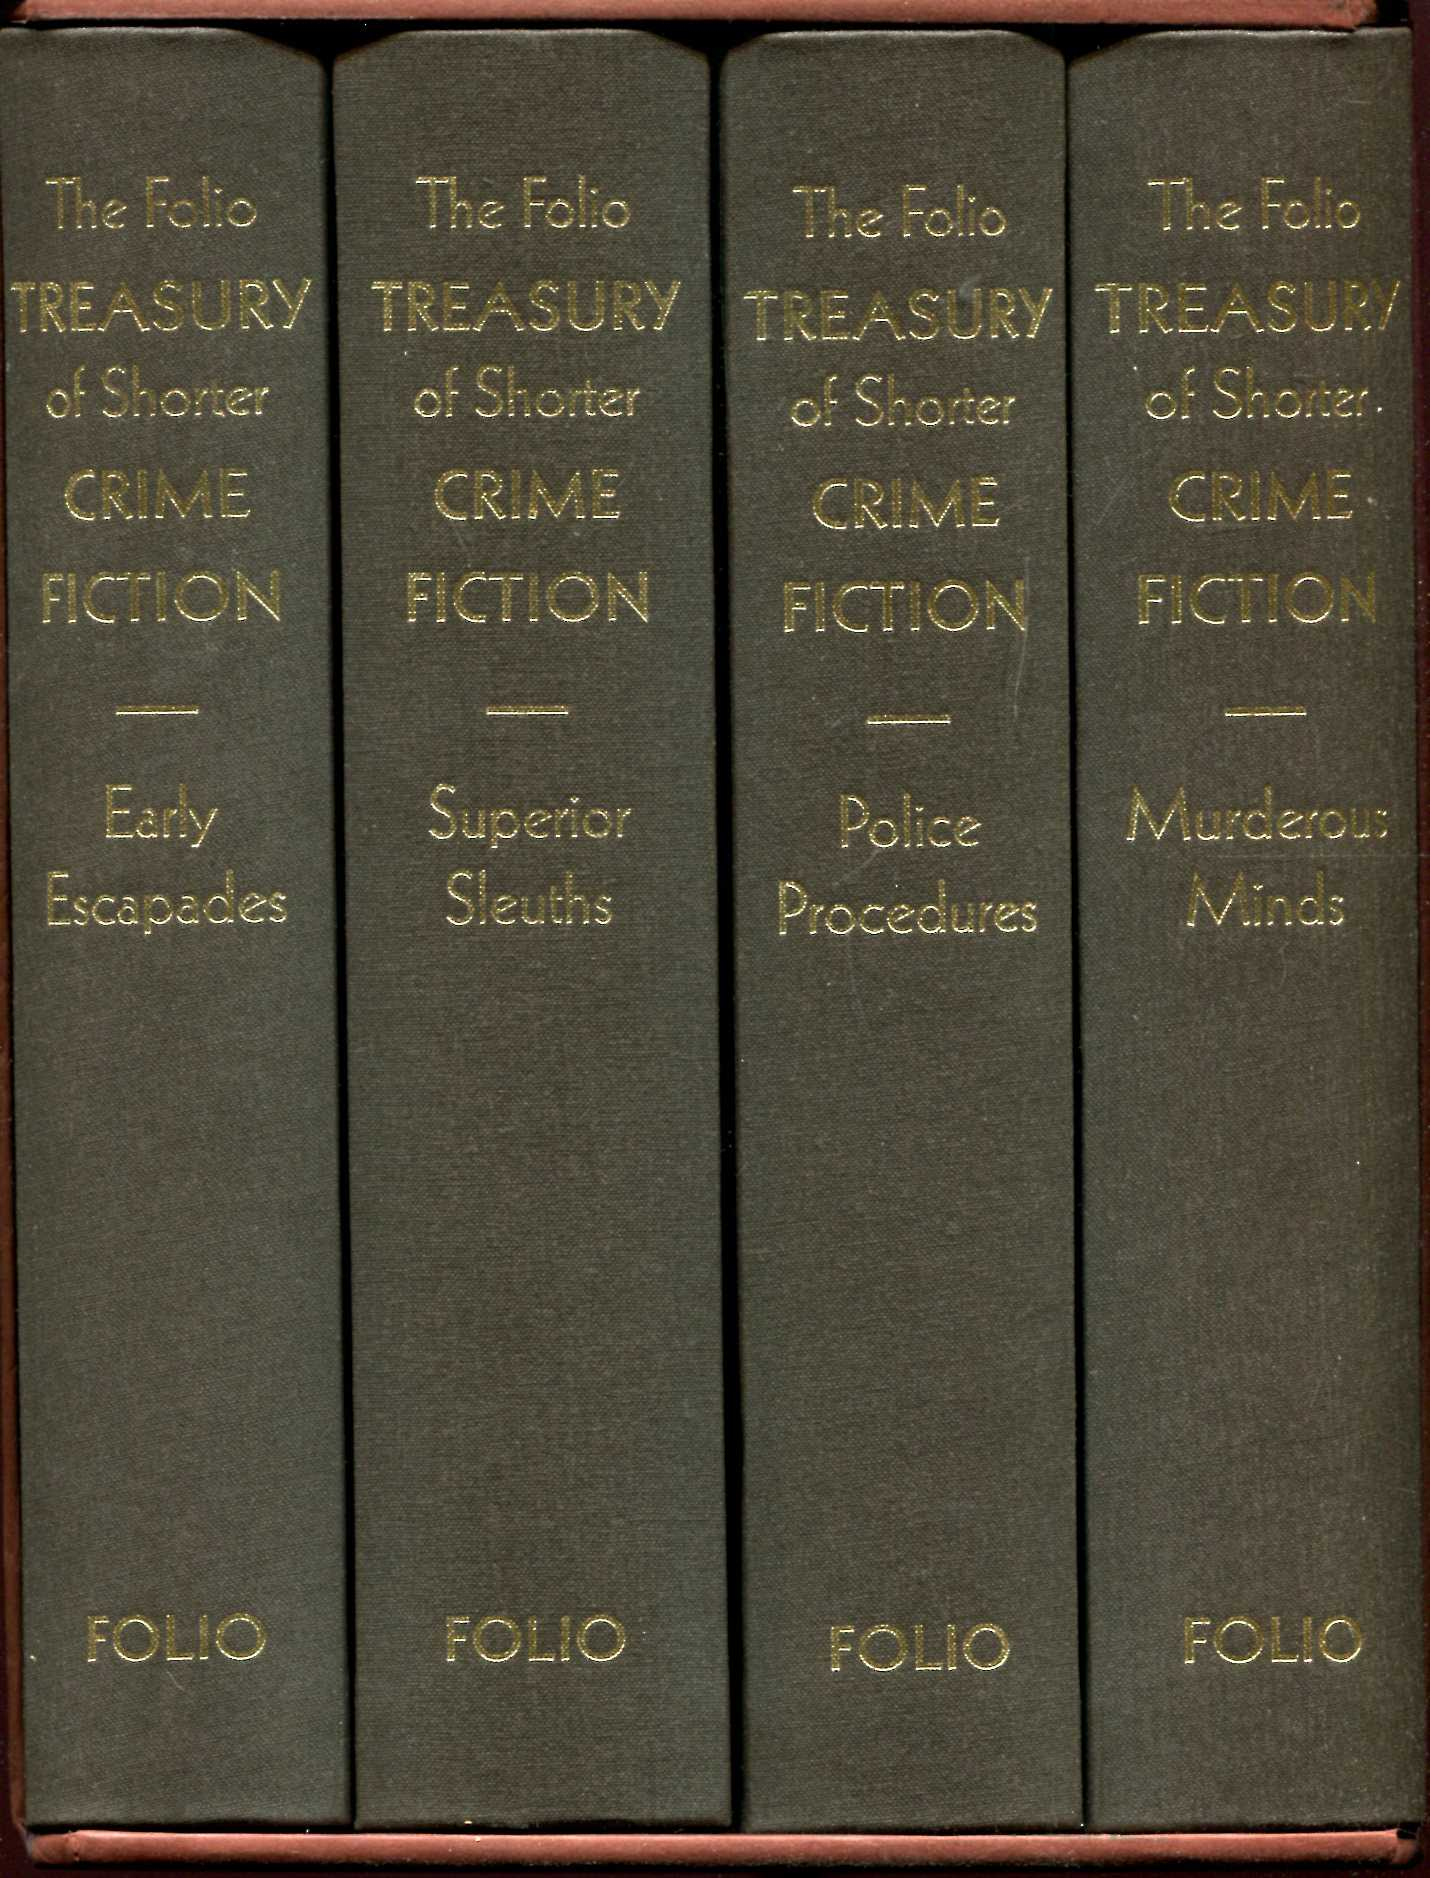 Image for The Folio Treasury of Shorter Crime Fiction I Early Escapades, II Superior Sleuths, III Police Procedures, IV Murderous Minds (four volumes complete)